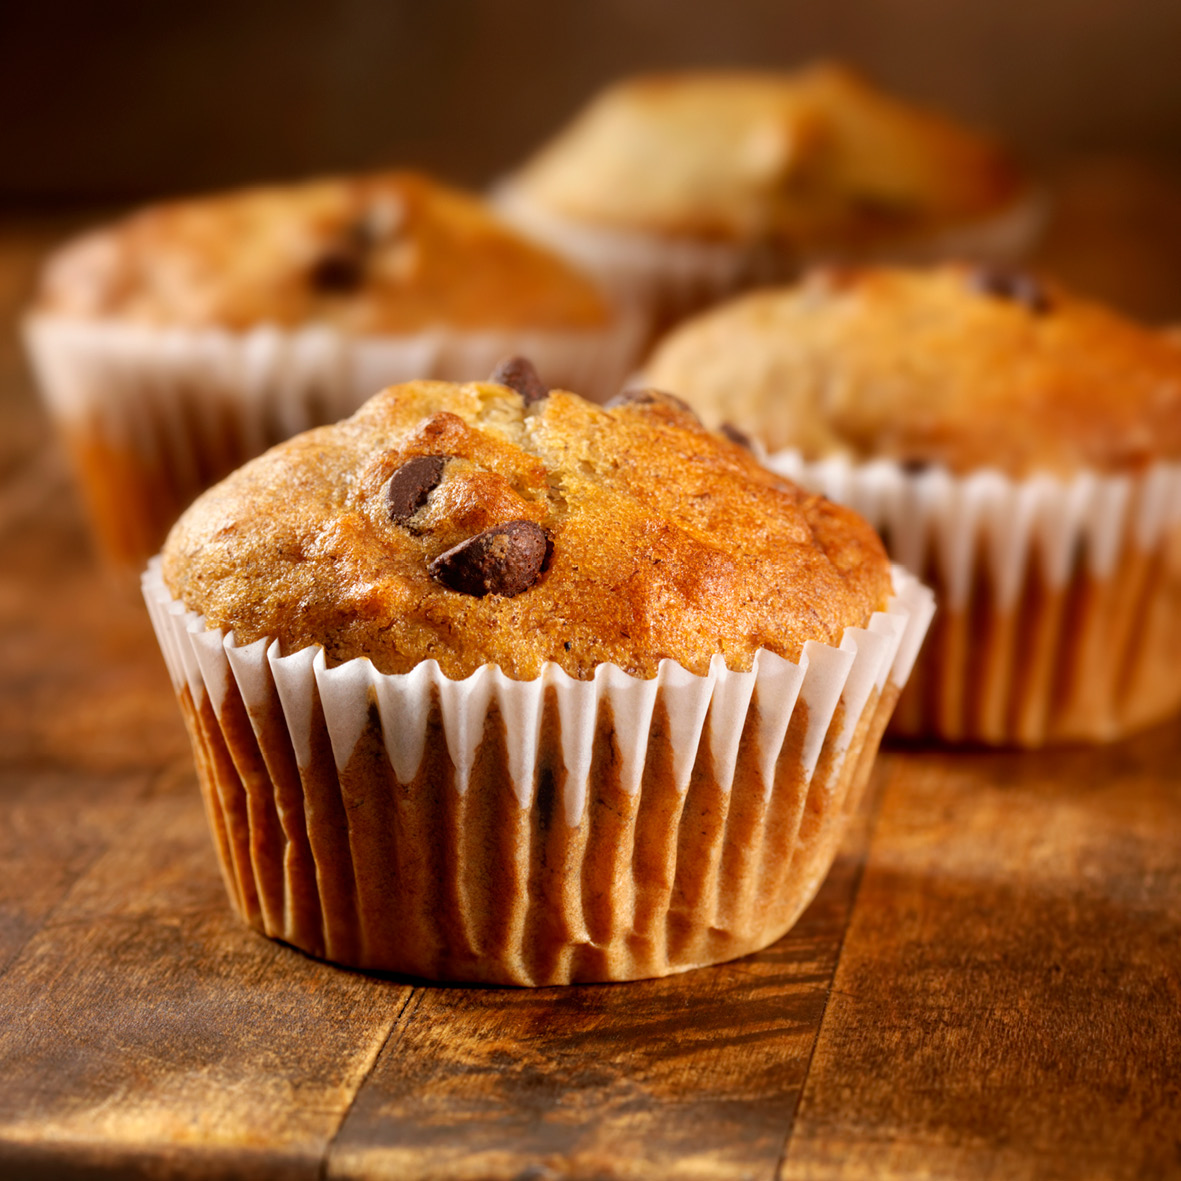 banana_and_choc-chip_muffins.jpg